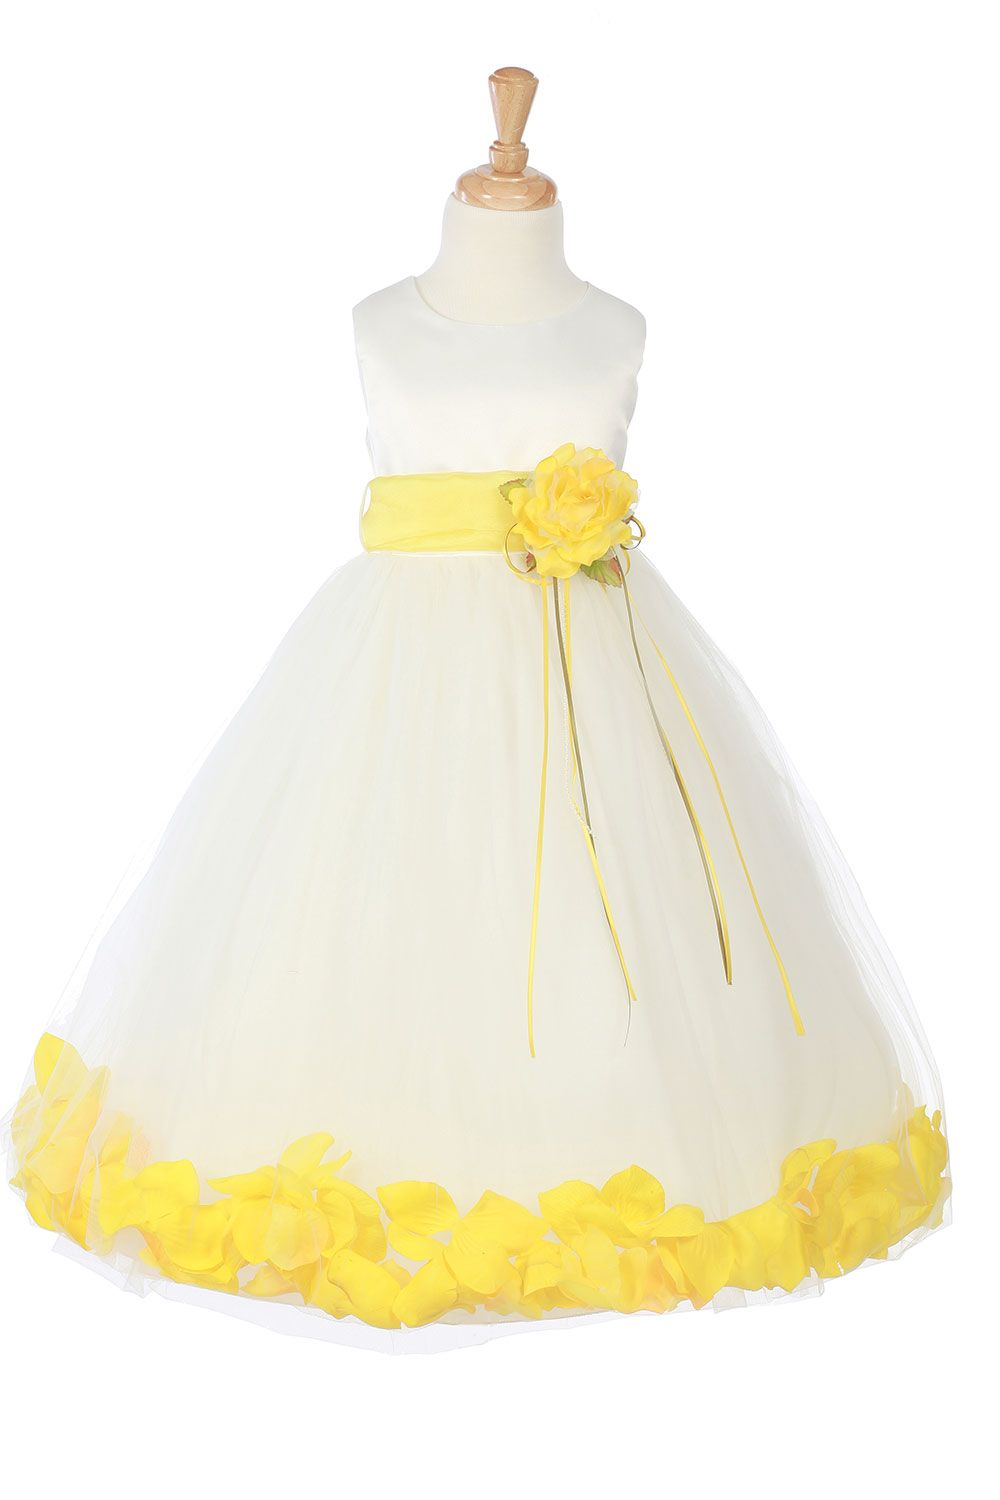 Ivoryyellow sleeveless satin flower petal flower girl dress with ivoryyellow flower girl dress mightylinksfo